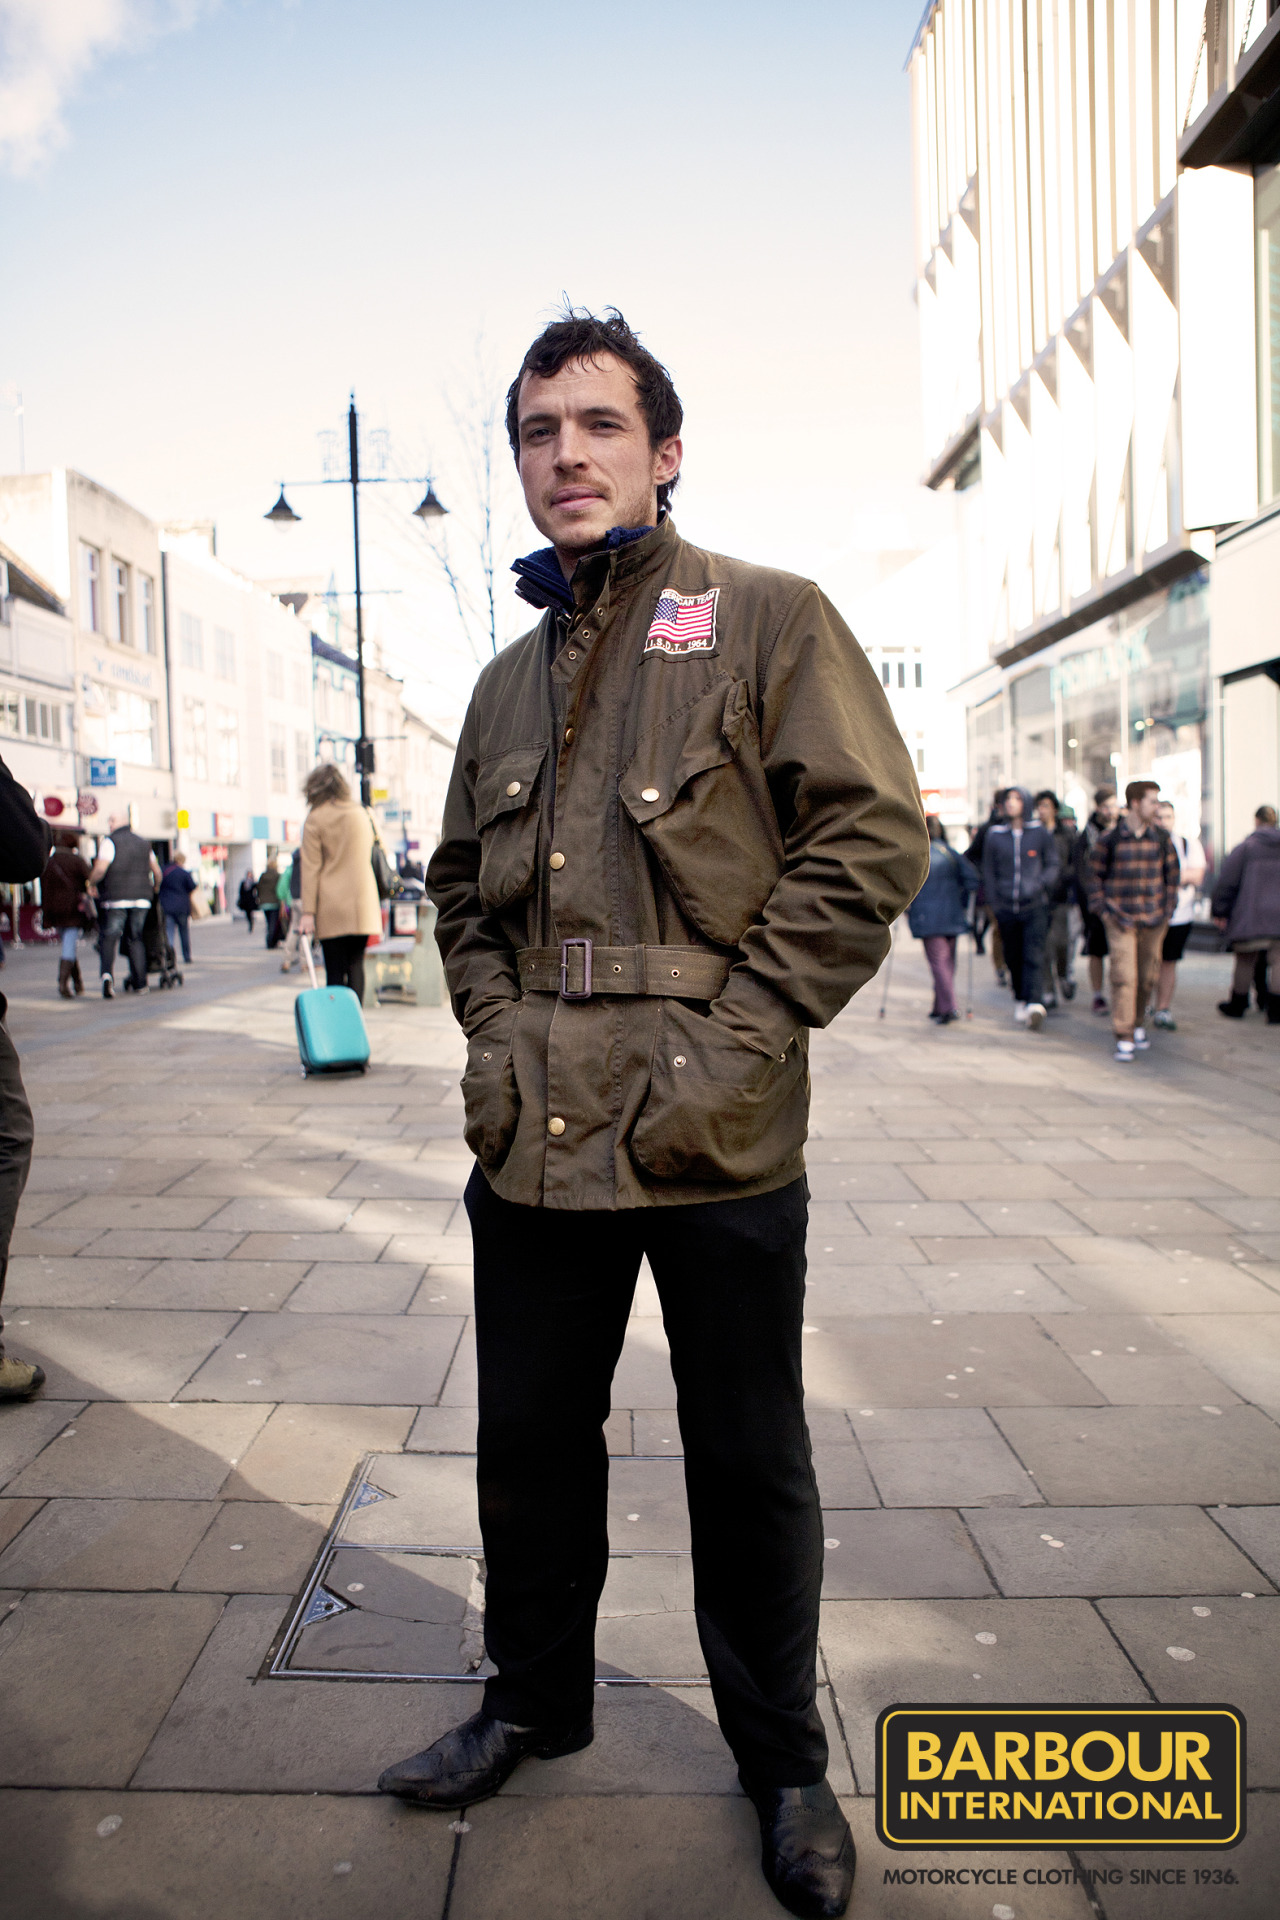 出典:http://barbourpeople.tumblr.com/post/84730772079/johnny-is-a-true-barbour-international-fan-as-you